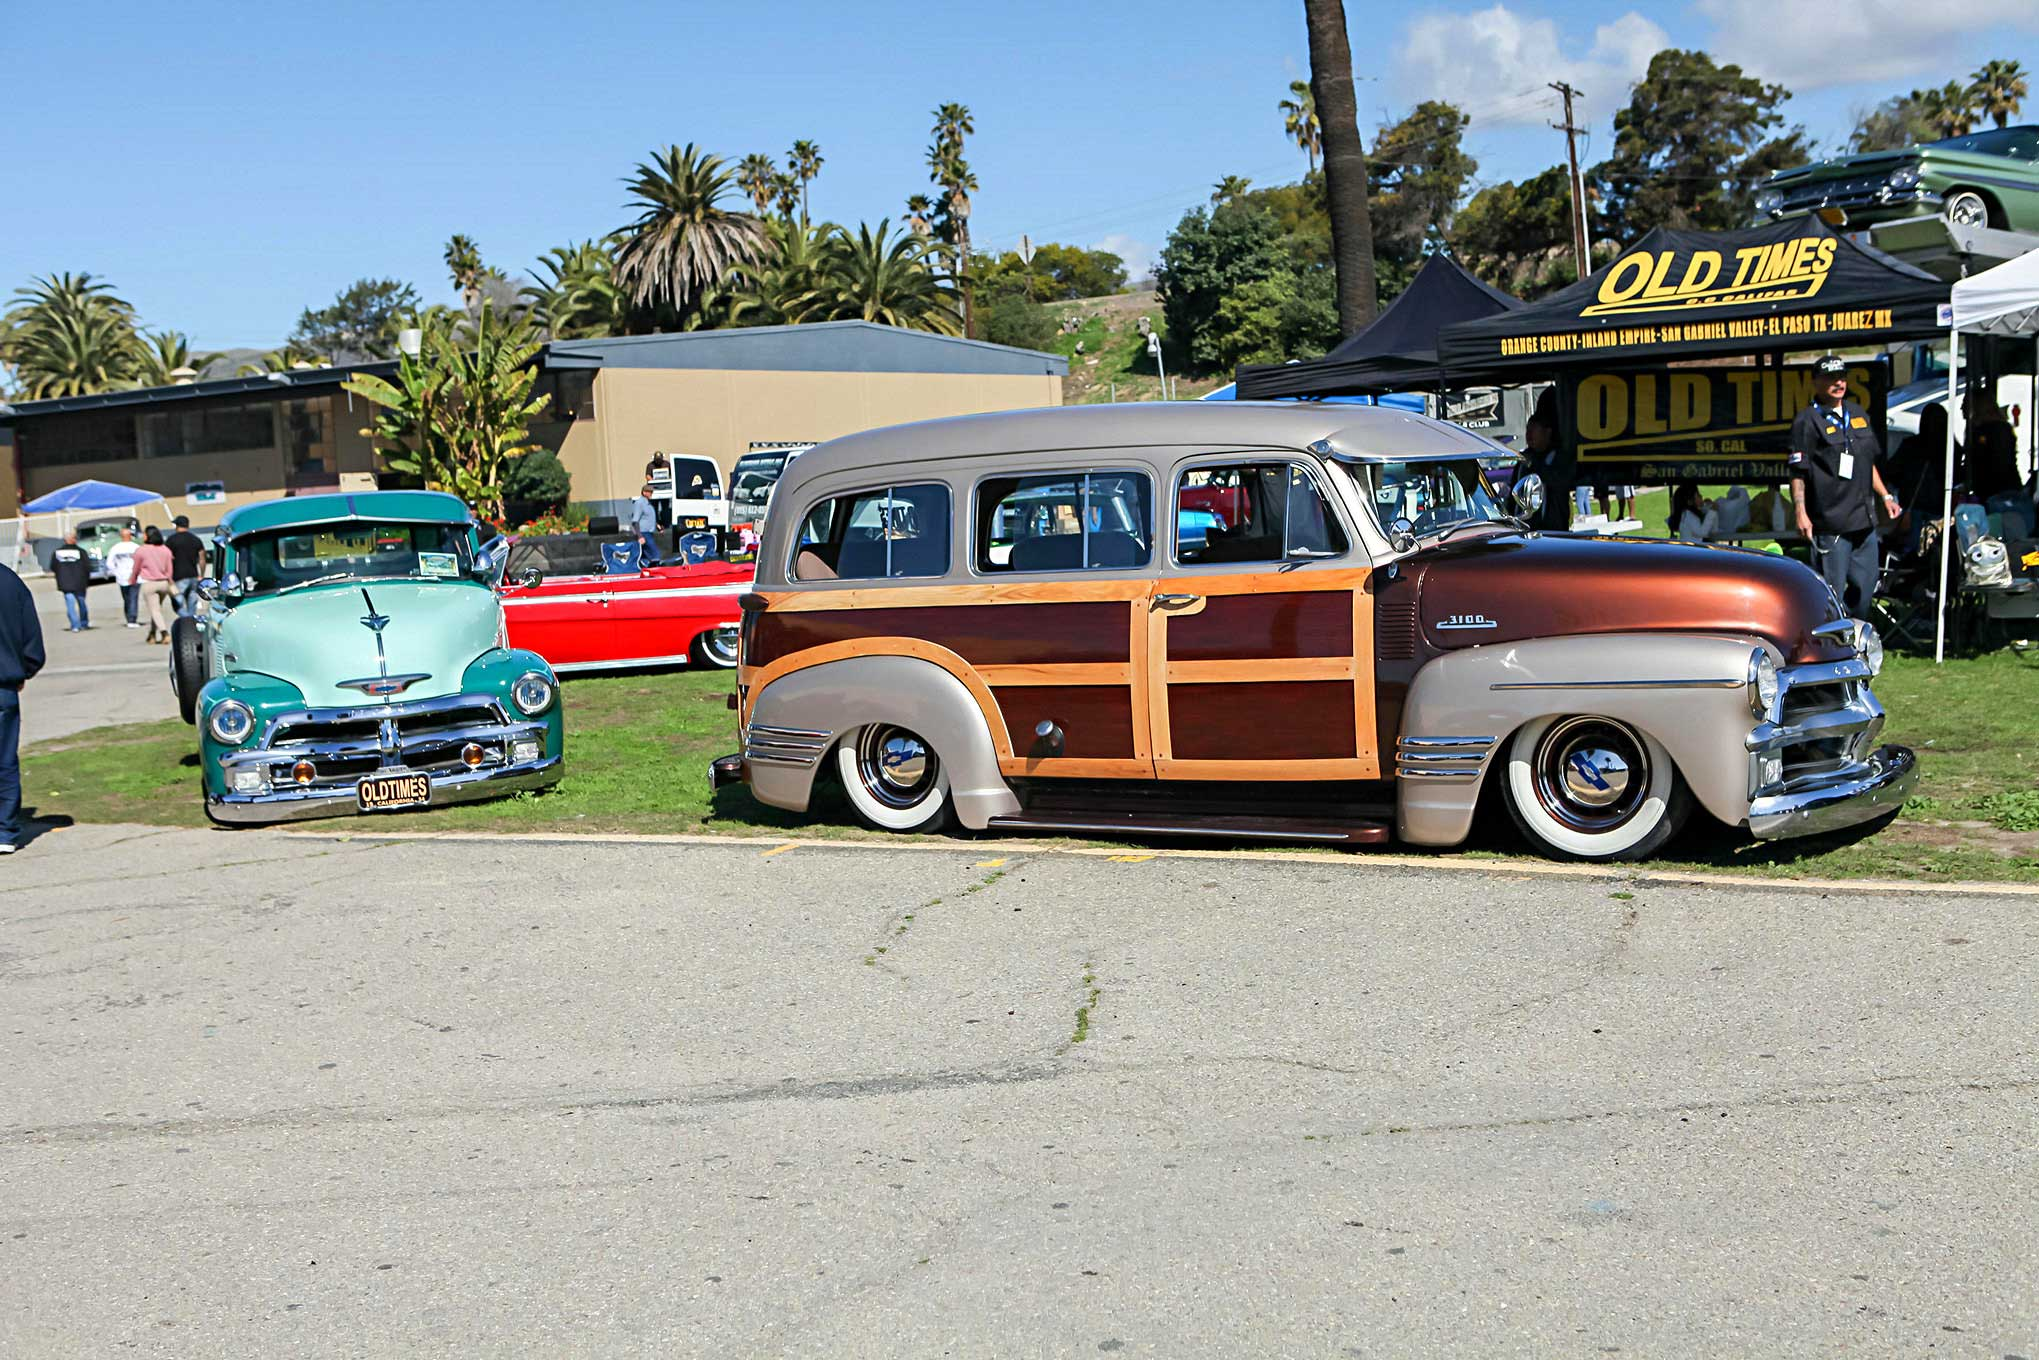 2018 Ventura County Car Show Old Times CCCars - Lowrider